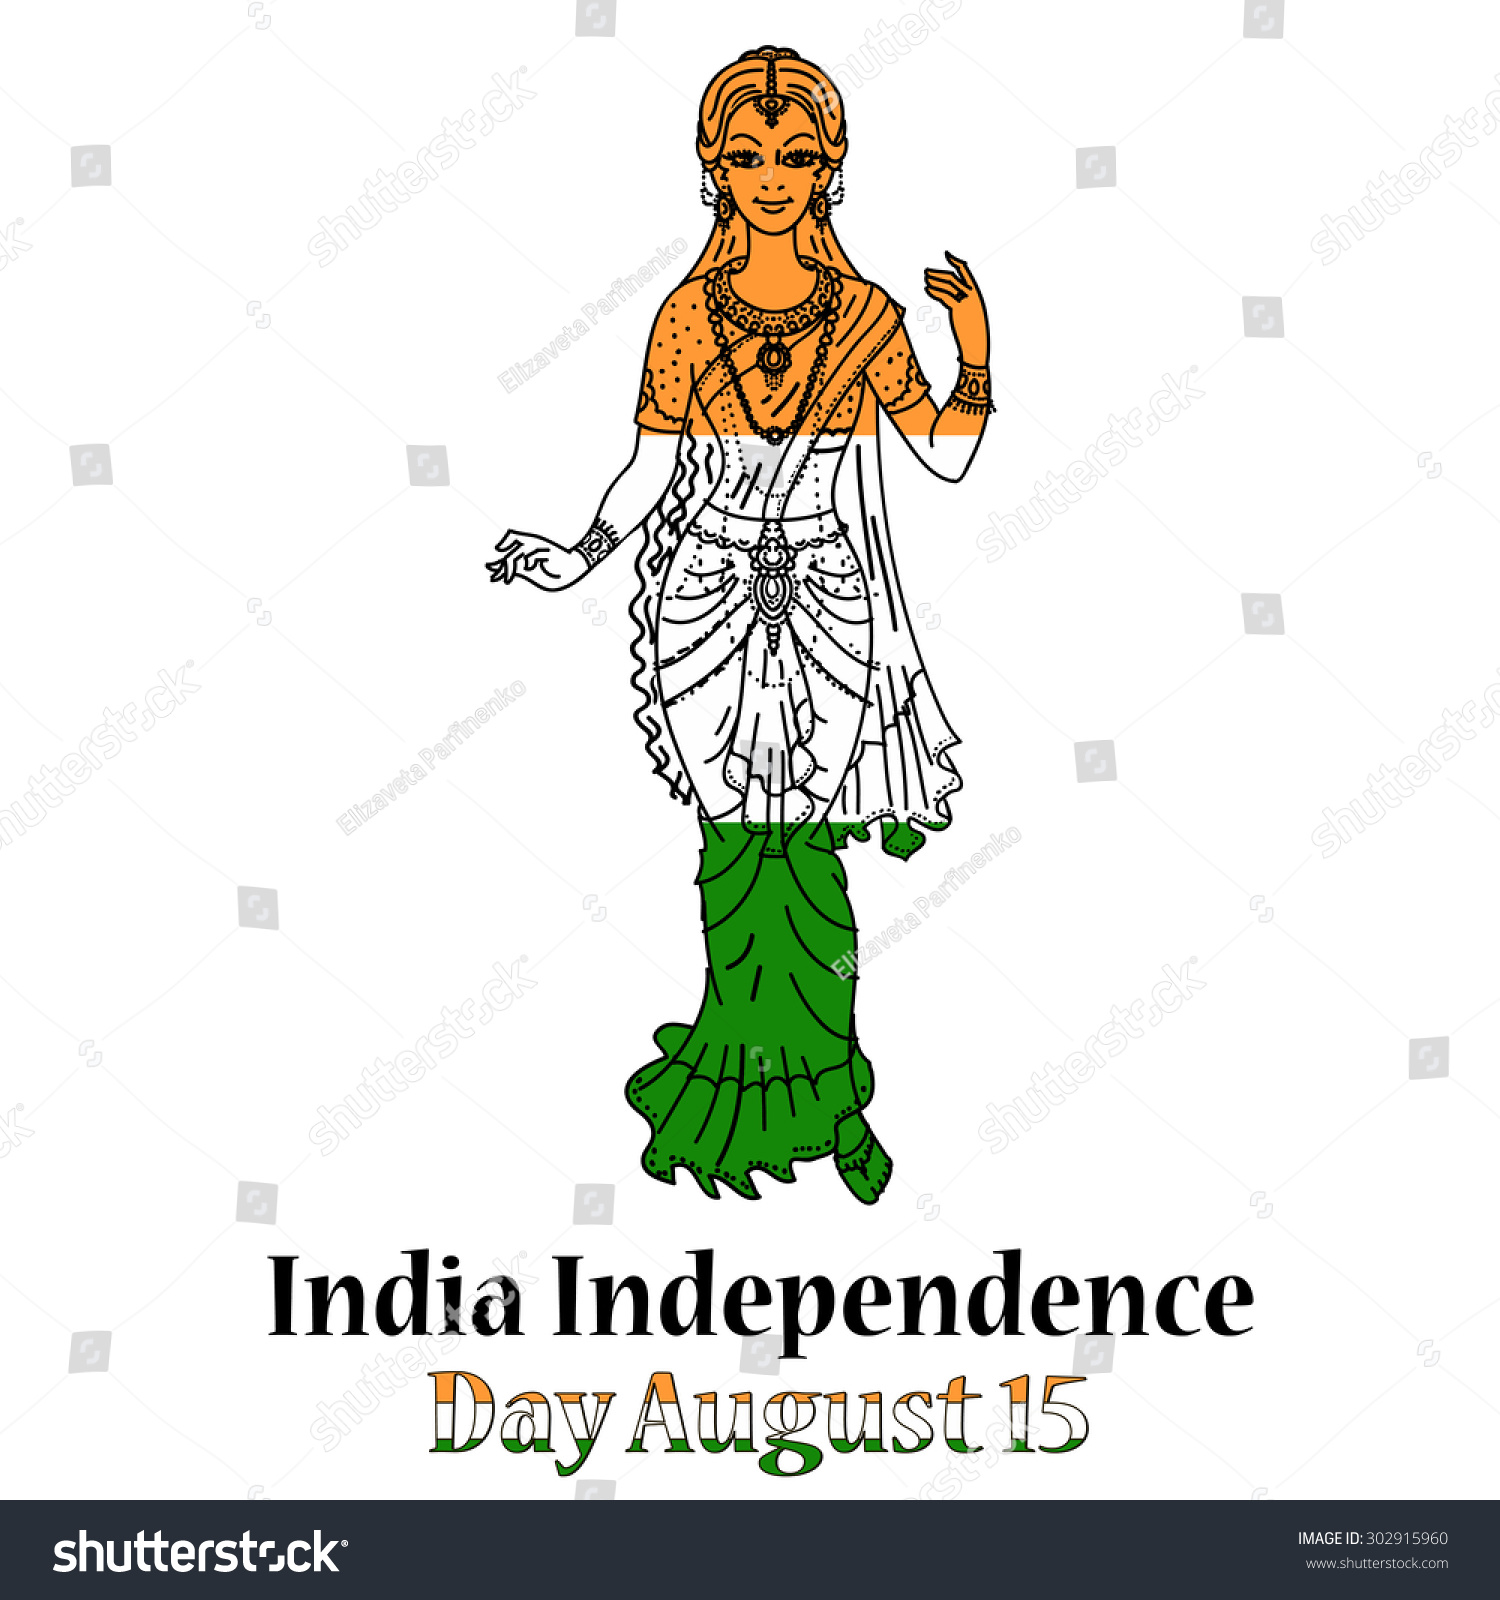 hindu single women in independence Single women choosing 'freedom, independence' over relationships with  there is a lot of evidence that single women can be extremely happy,  connect with abc news.